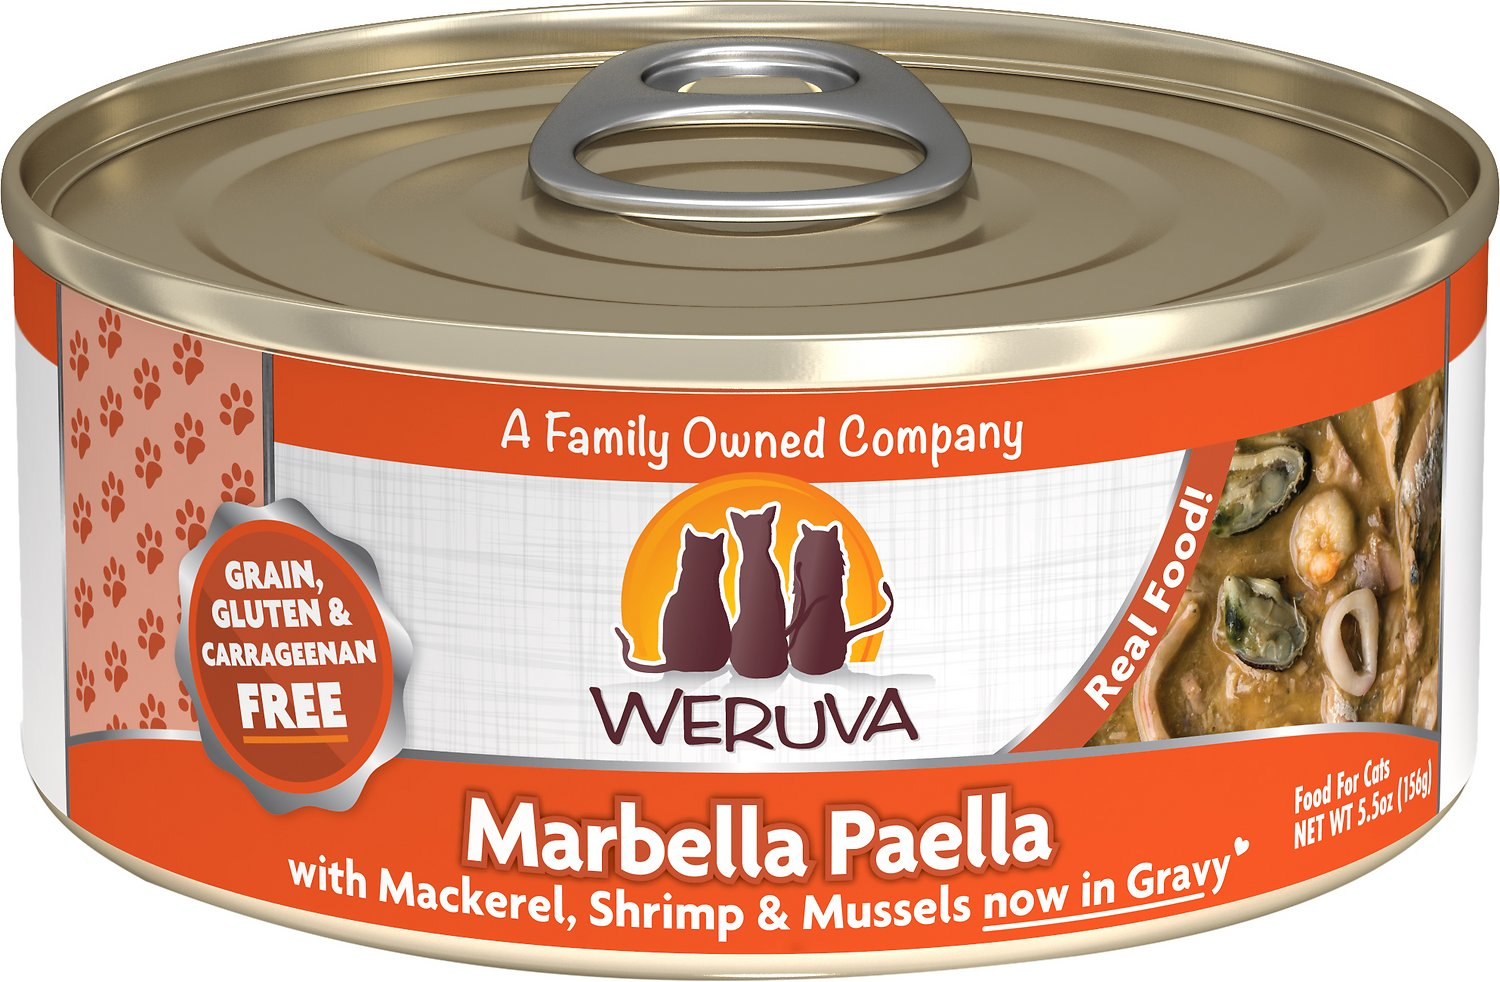 Weruva Cat Classic Marbella Paella with Mackerel, Shrimp & Mussels Grain-Free Wet Cat Food, 5.5-oz